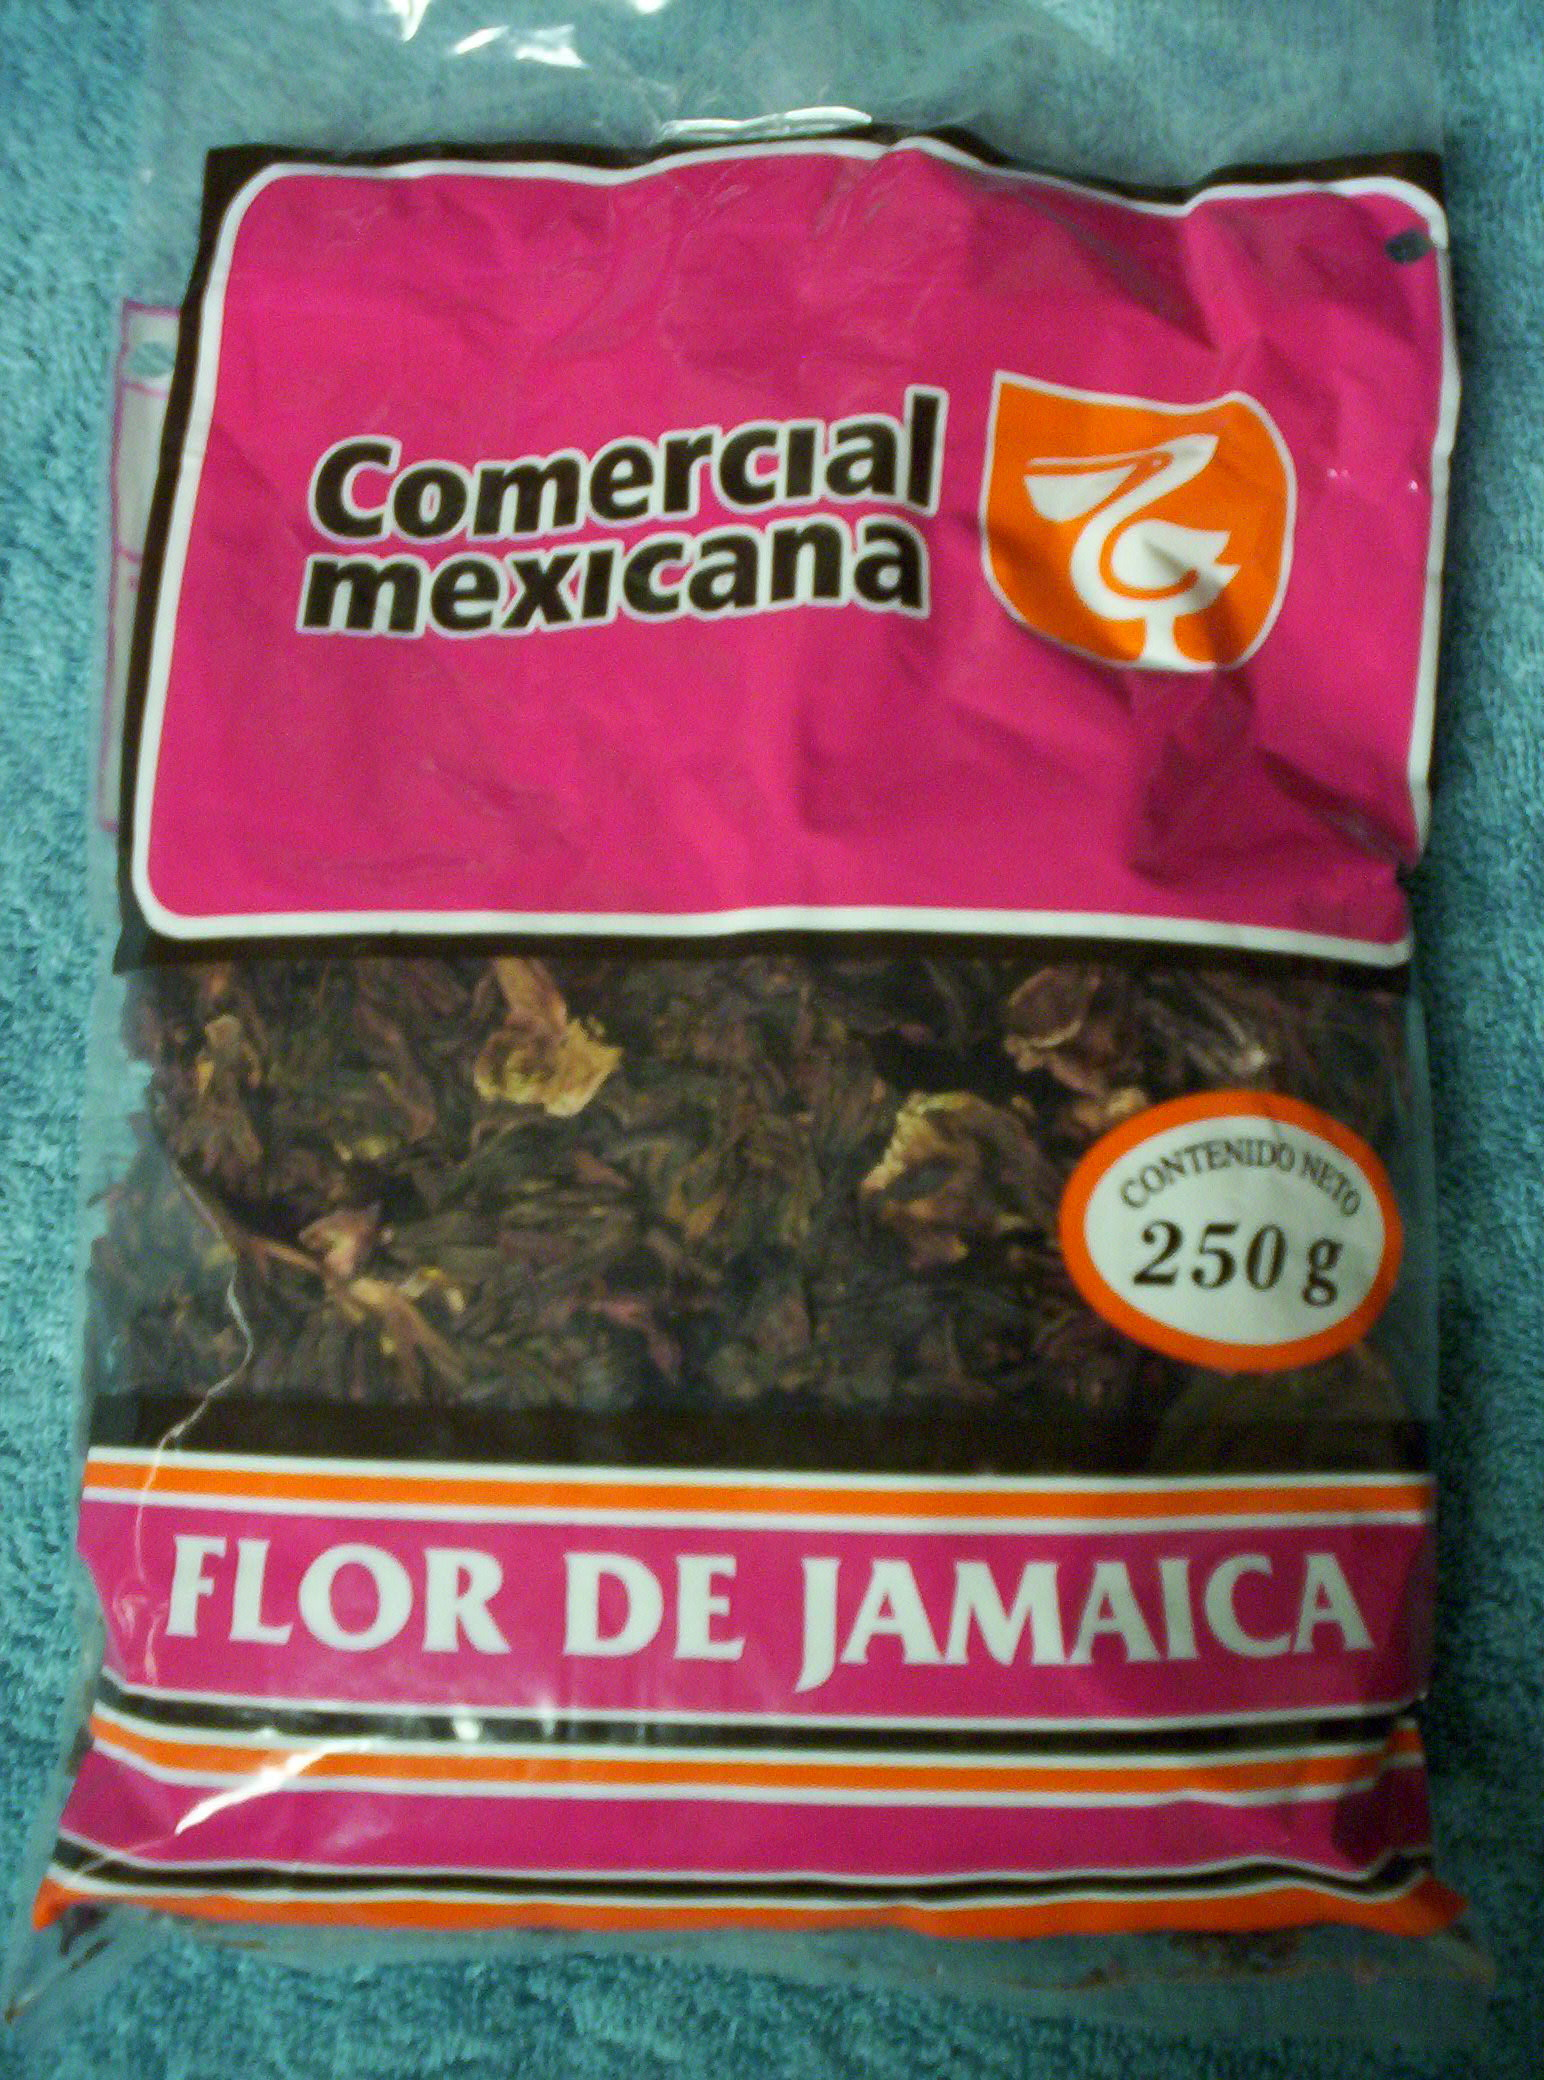 http://upload.wikimedia.org/wikipedia/commons/0/06/Flor_de_Jamaica.JPG